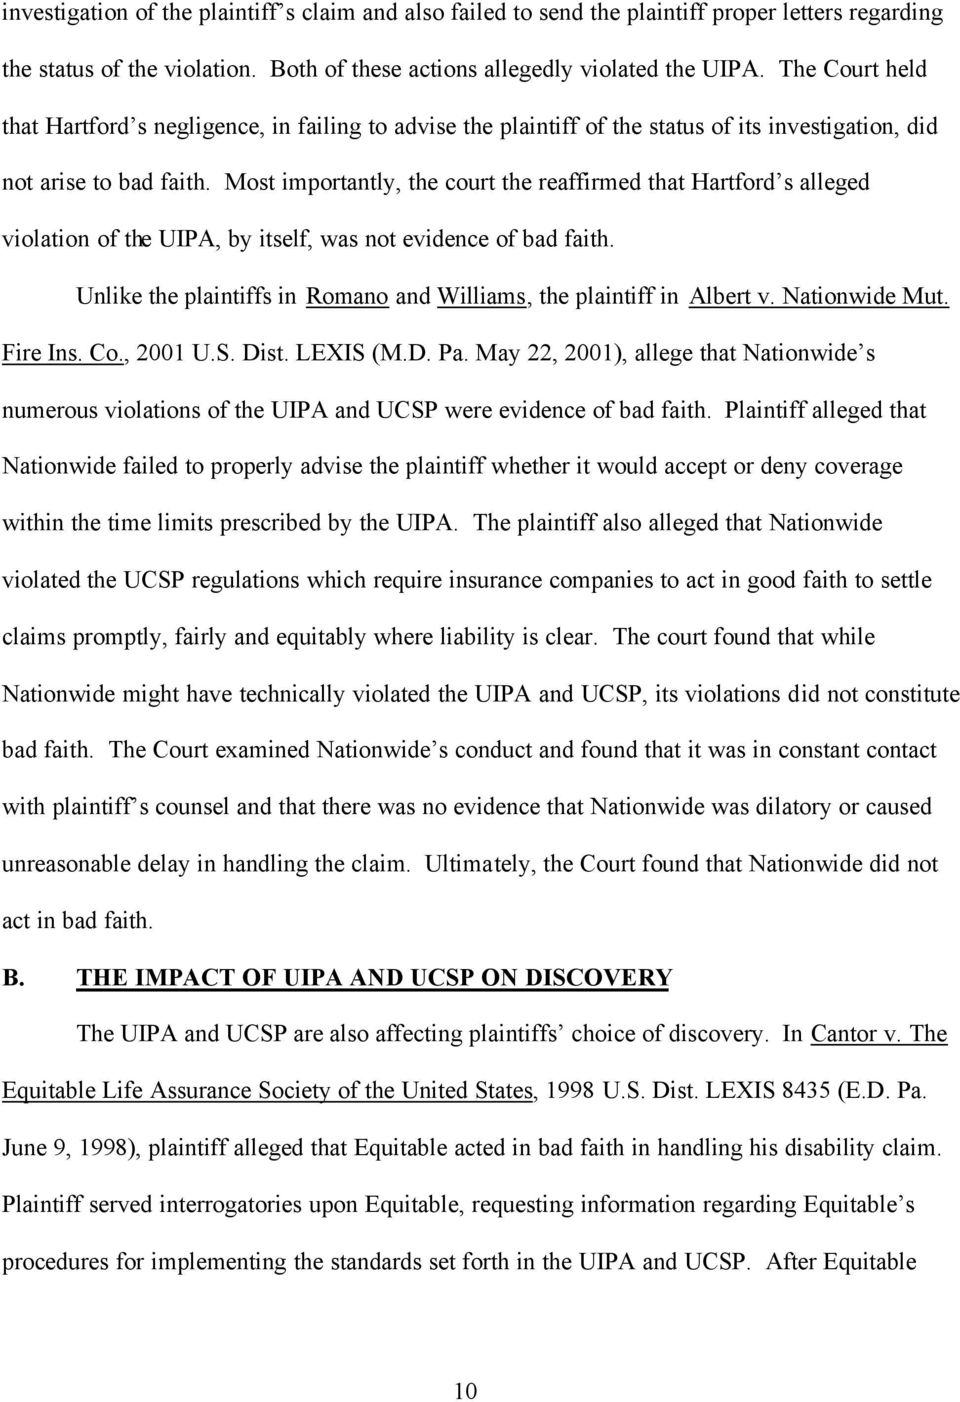 Most importantly, the court the reaffirmed that Hartford s alleged violation of the UIPA, by itself, was not evidence of bad faith.